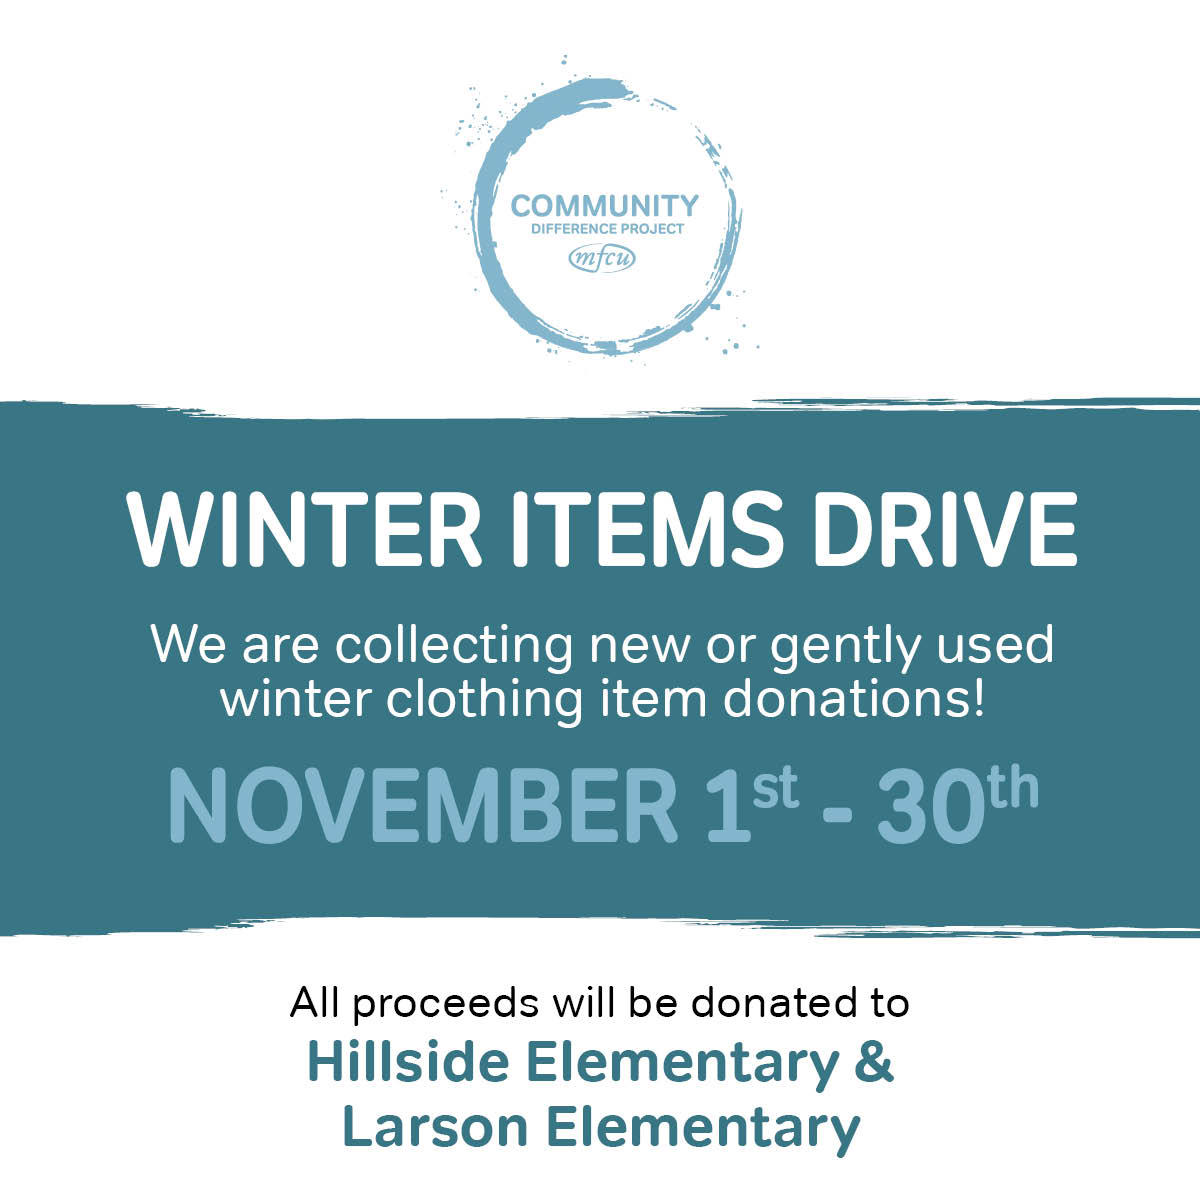 winter items drive